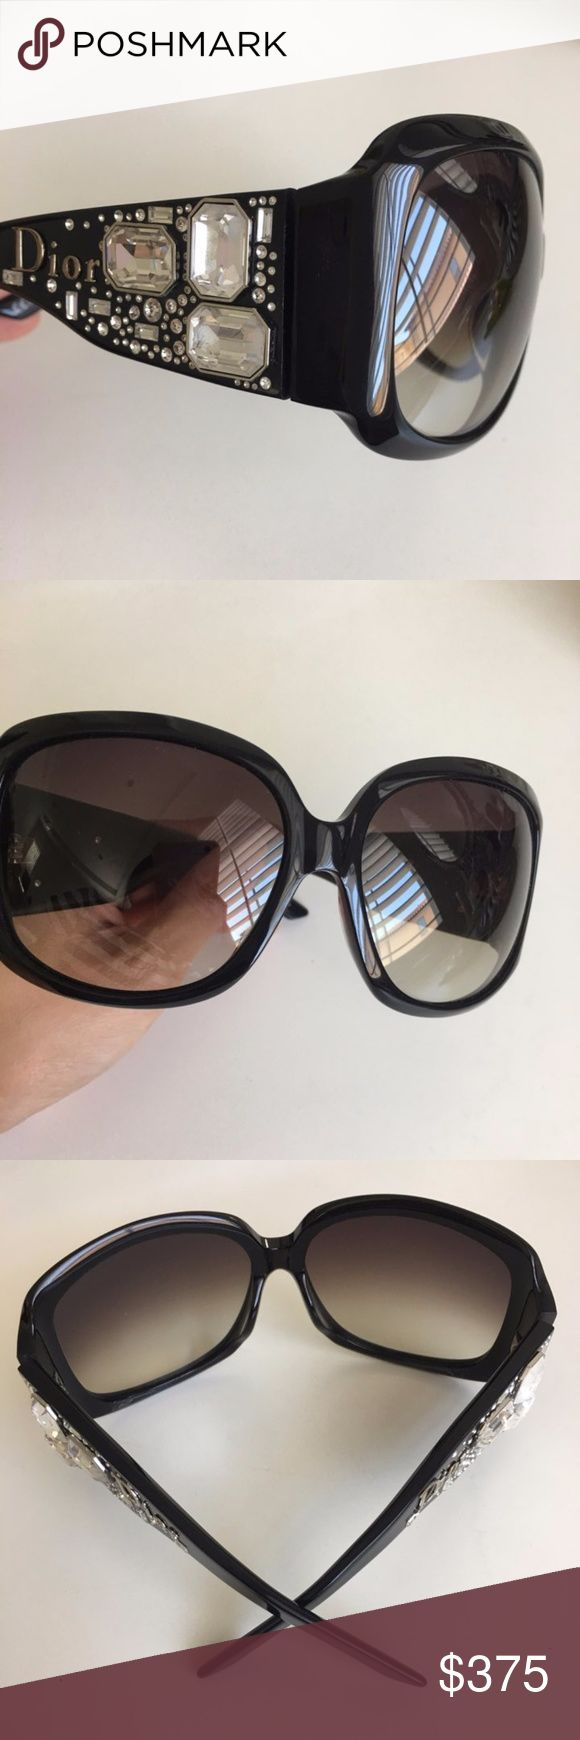 """NEW Authentic Limited Edition Dior Sunglasses 100% authentic and rare Christian Dior """"Dior on The Rocks"""" shield sunglasses! Limited edition so they are very hard to find. Glamorous and definitely a must-have for your closet. Stunning embellishments and classic frame. NEVER WORN and in perfect condition. No case. No trades or lowballs please! Dior Accessories Sunglasses"""